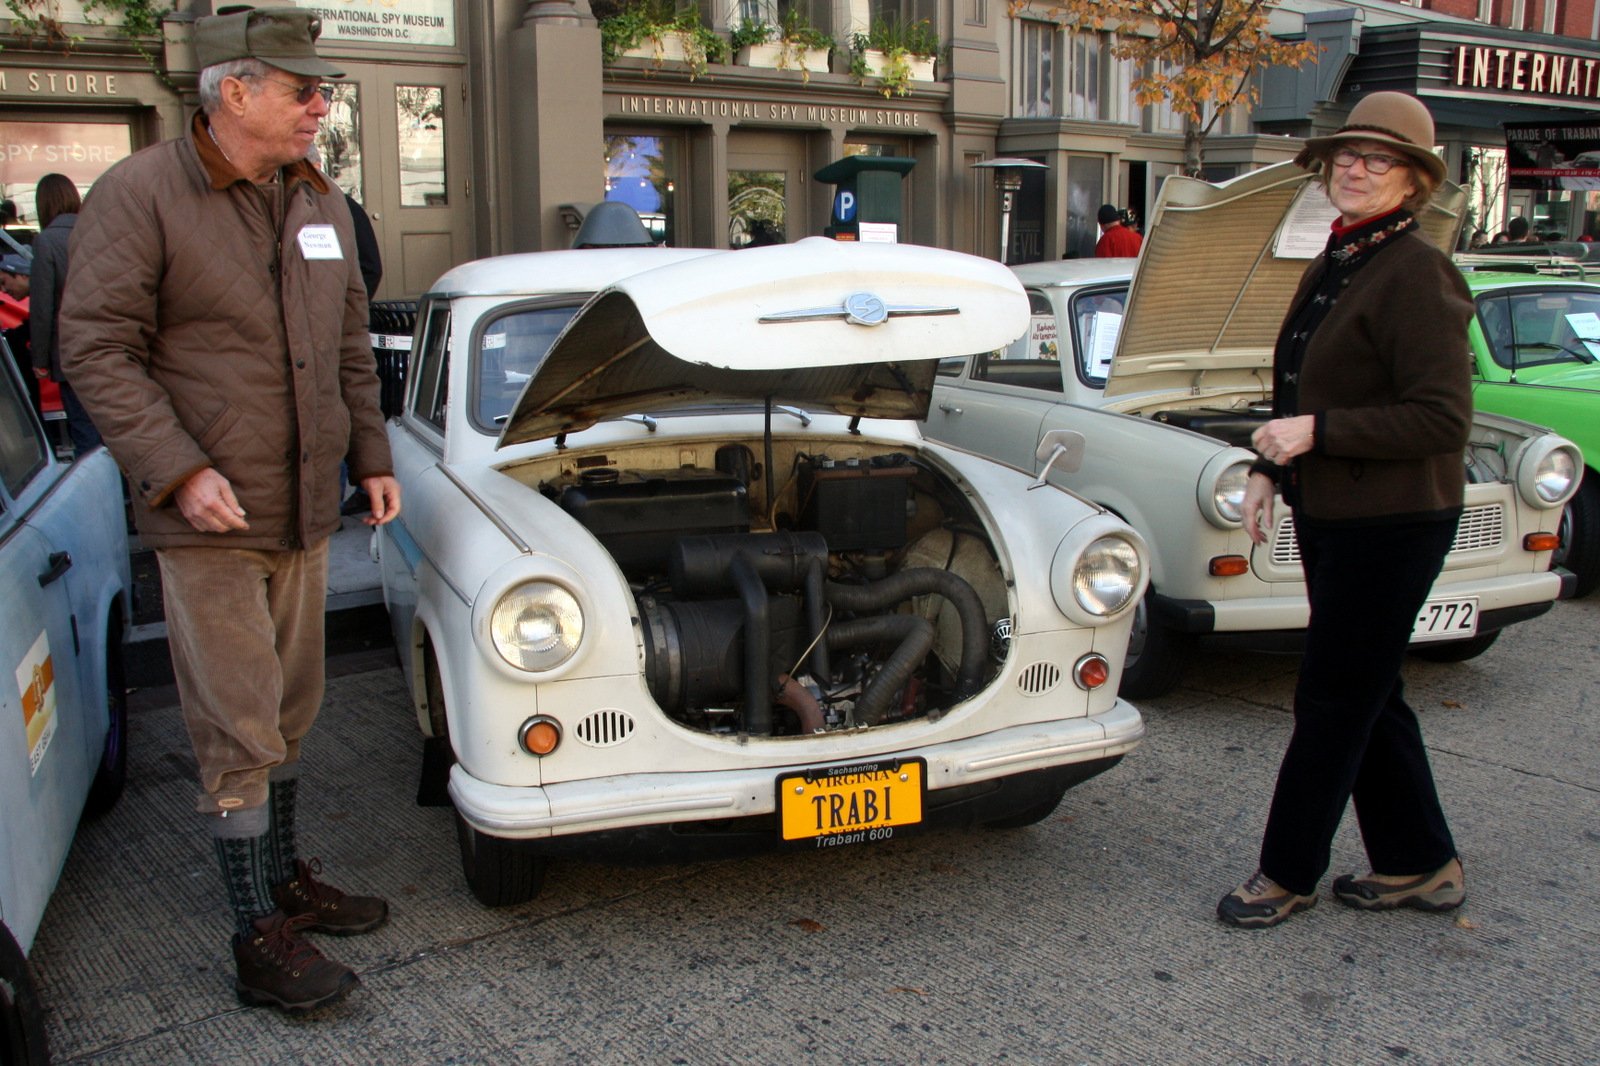 Jane and George Newman bought their 1963 Trabant 601 when George was stationed at a U.S. Army base in Germany in the 1990s.